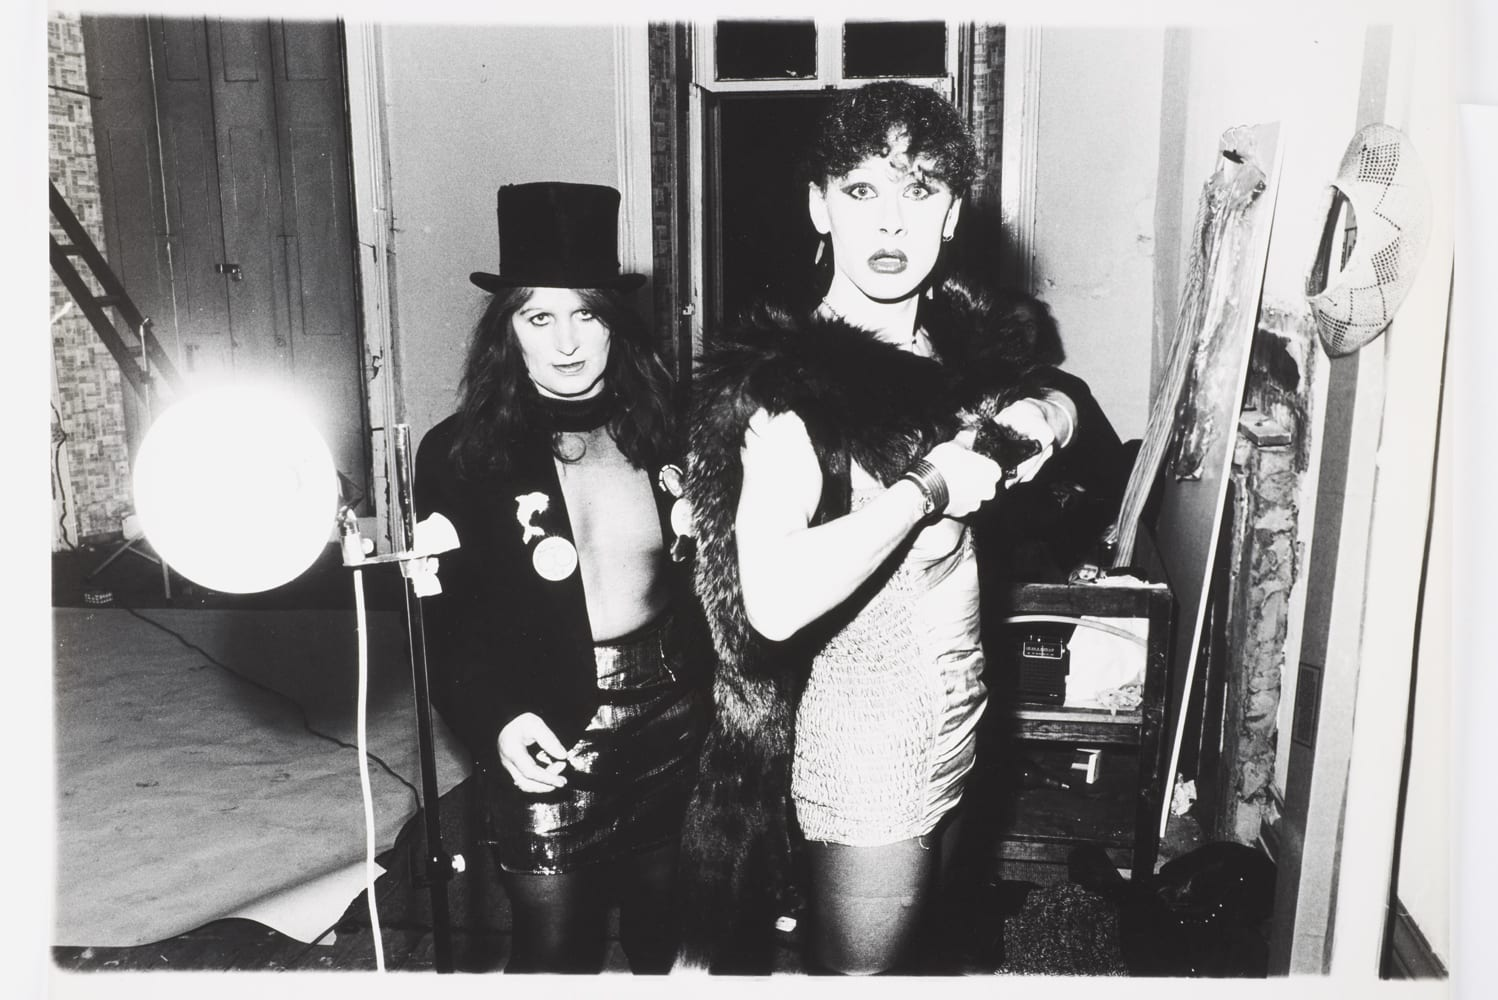 Trans women, Pimlico, 1981. This image may be published free of charge if used to review or promote the exhibition 'Stomping Grounds: Photographs by Dick Scott-Stewart 27 May – 18 Sep 2016'. All uses must be credited © Dick Scott-Stewart Archive/Museum of London. Images may not be cropped or overlaid with text without permission. Images published on the web are limited to a maximum size of 600 pixels high. Uploading to social media channels is not permitted. All other uses must be cleared with the Museum of London and the copyright holder.